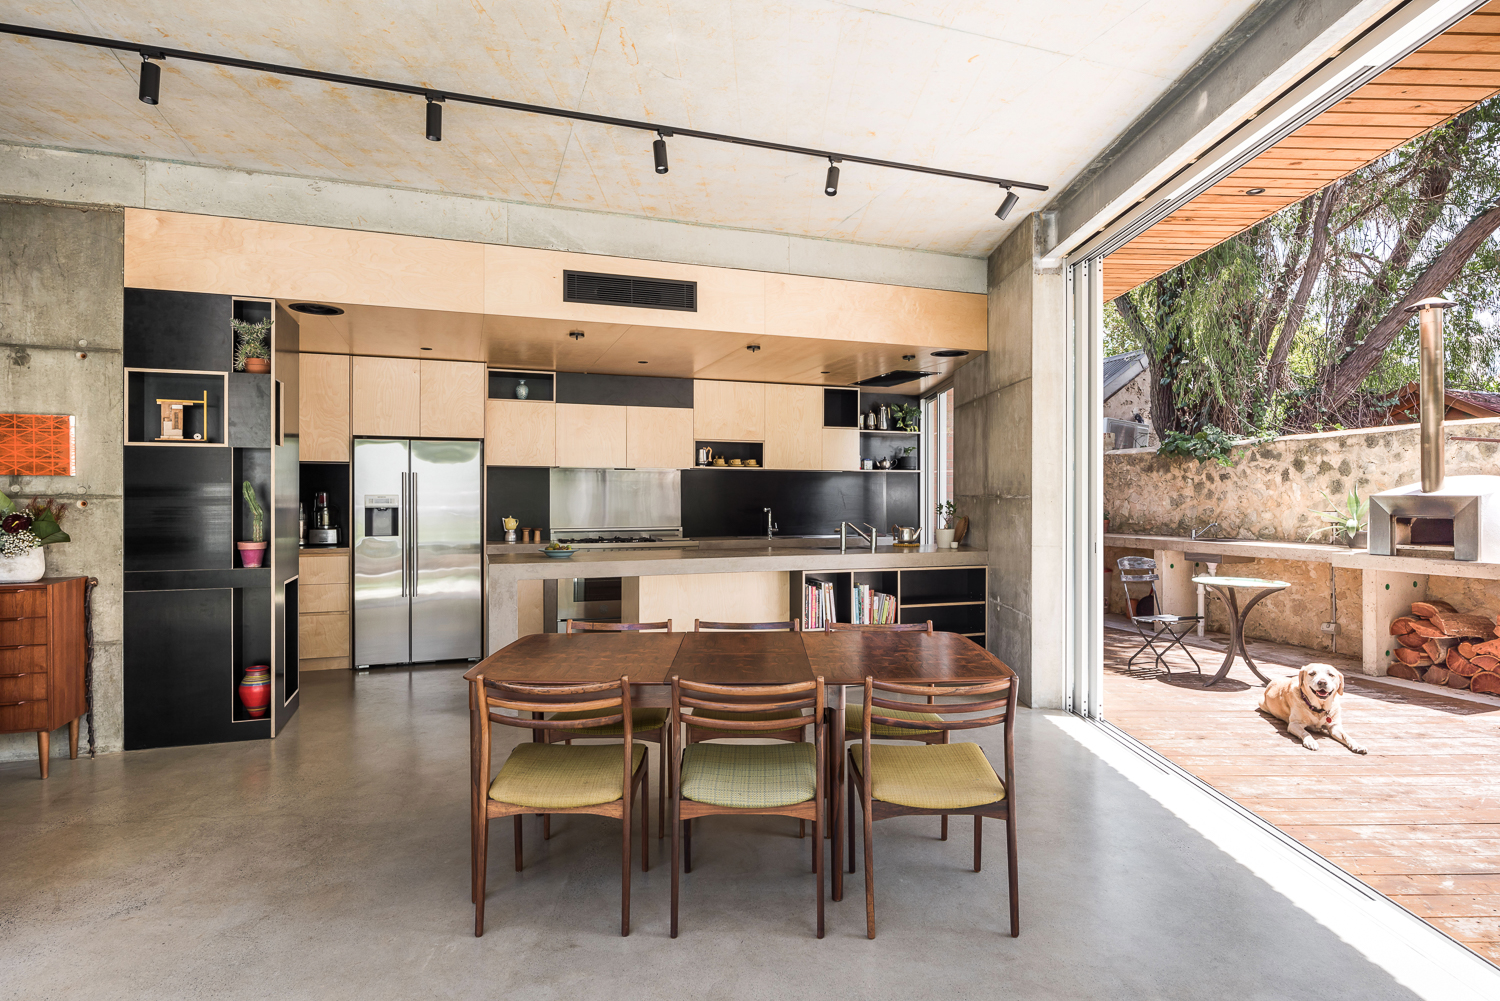 Gallery Of Silver Street House By Ehdo Architecture Local Design And Interiors South Fremantle, Wa Image 5